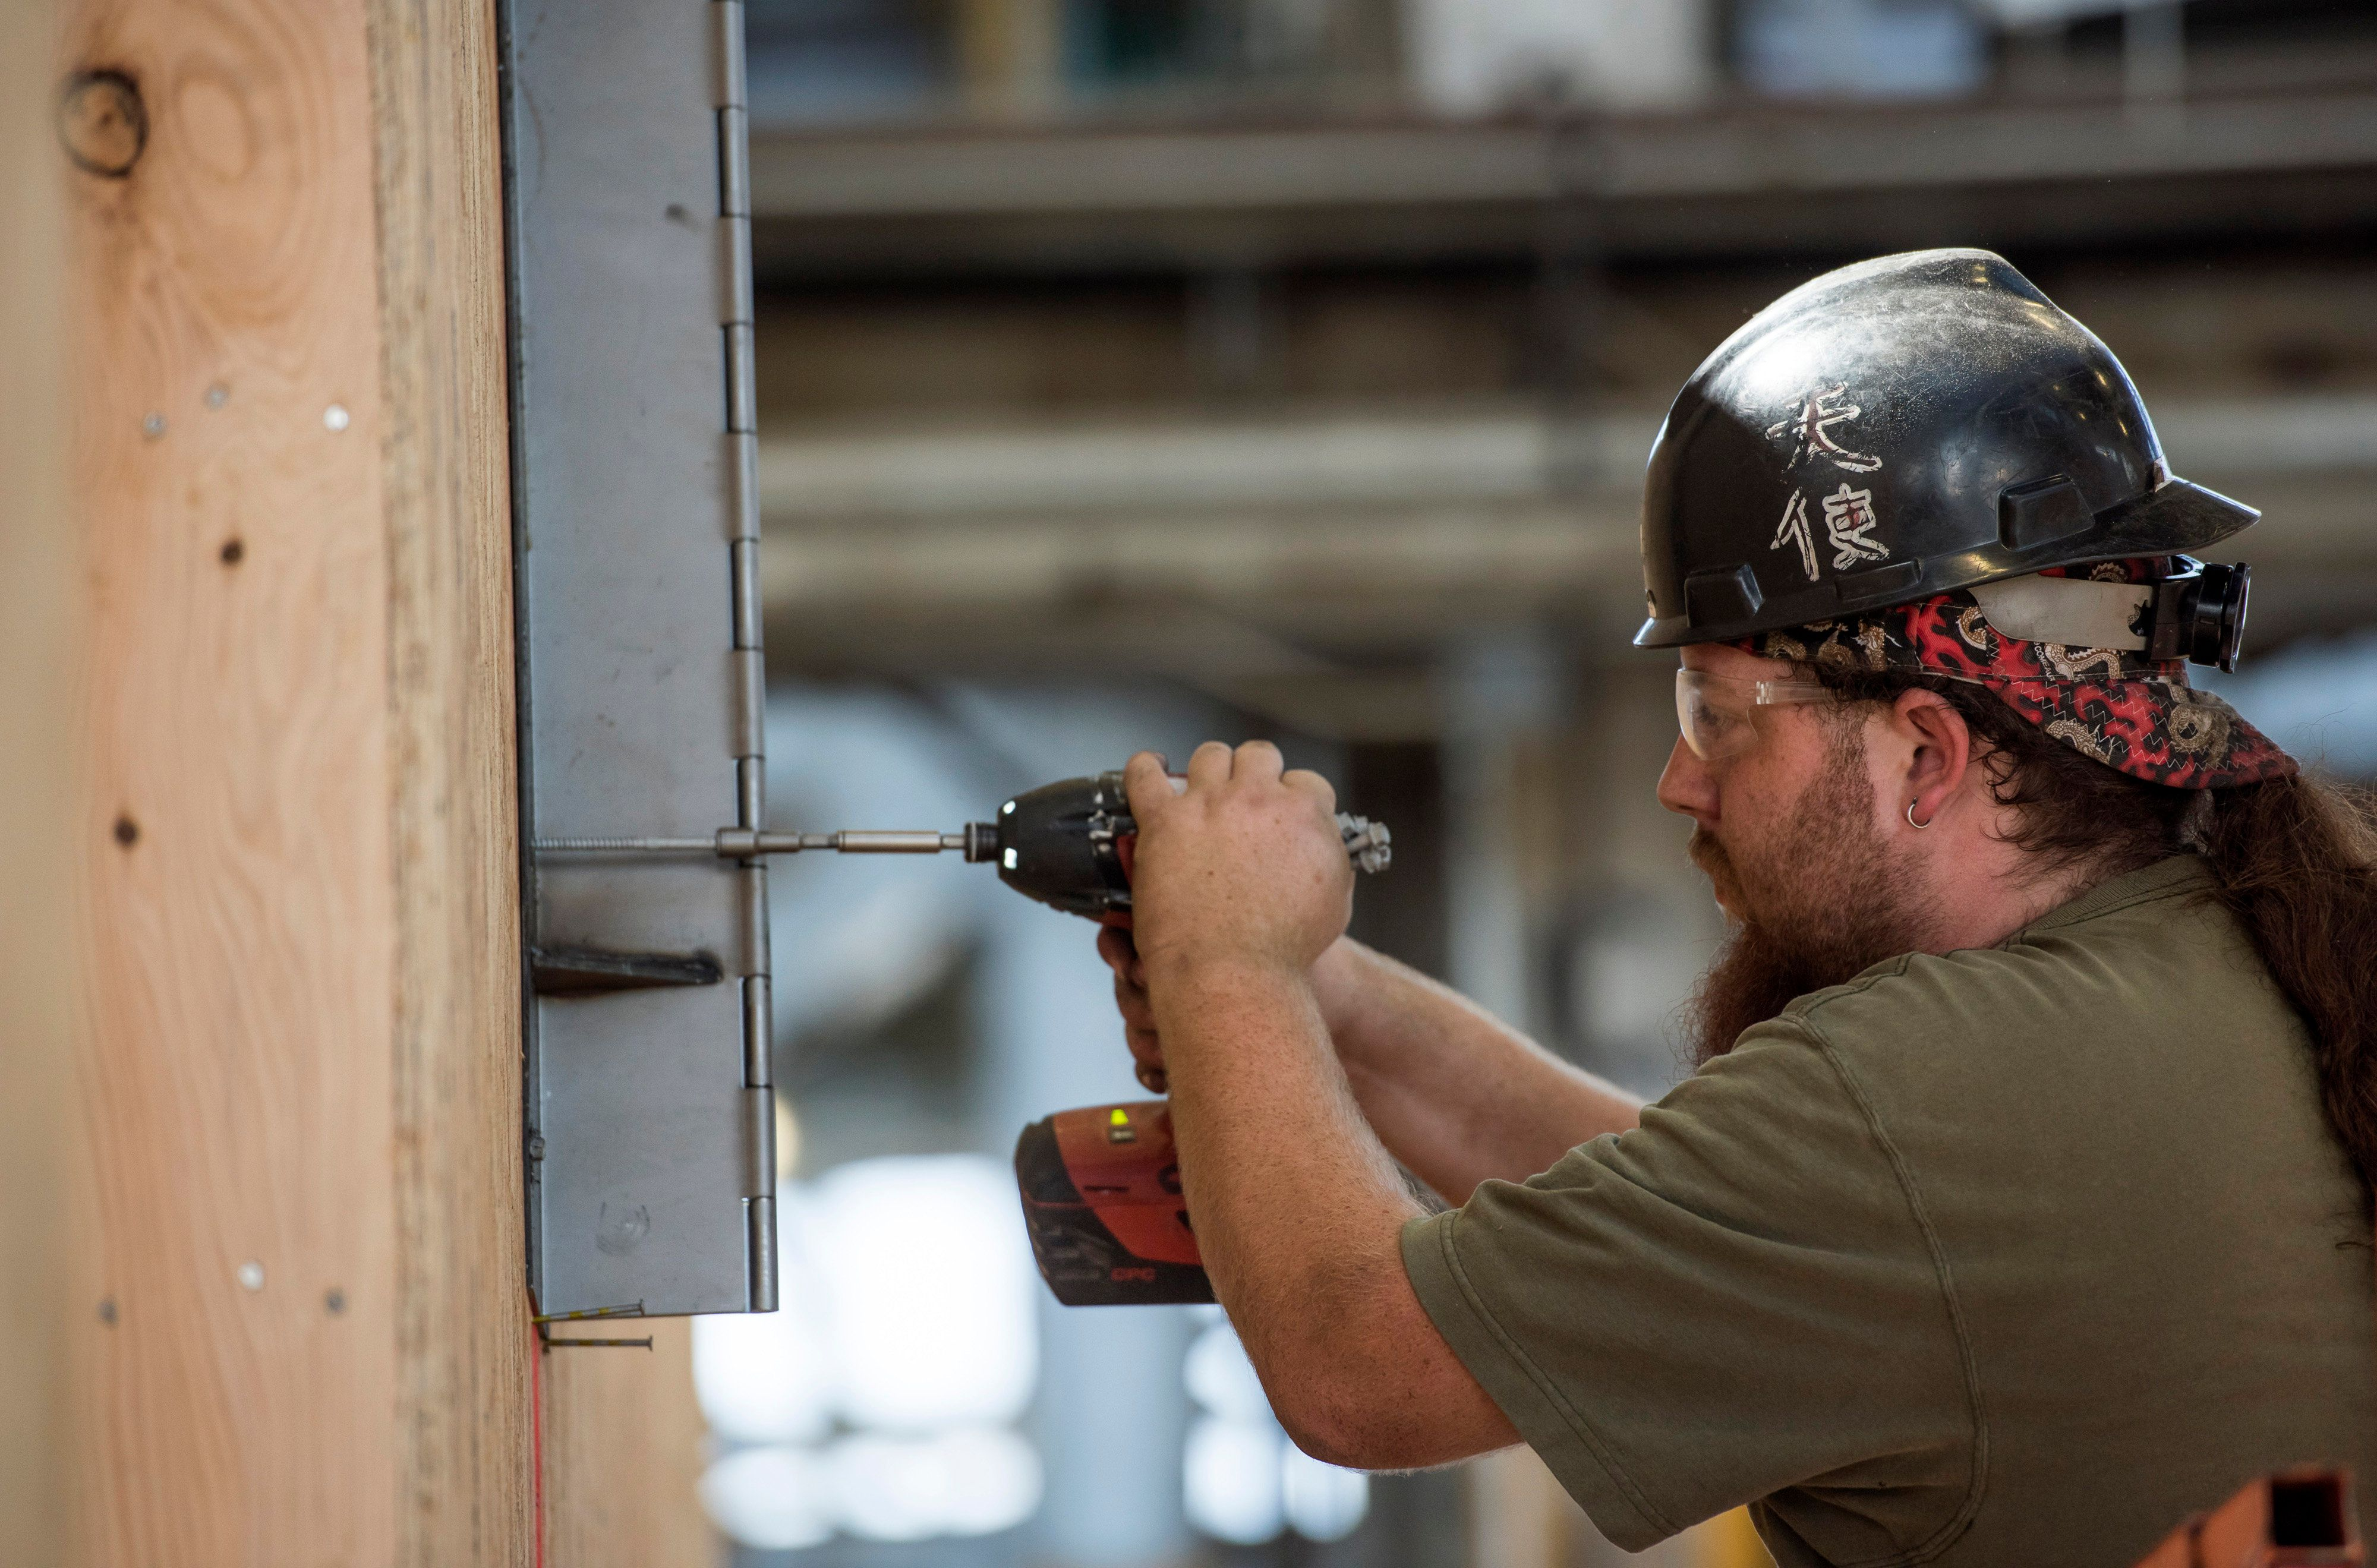 A worker attaches a metal box to a house being constructed at the BLU Homes Inc. production facility in Vallejo, California, U.S., on Friday, Sept. 11, 2015. BLU Homes operates as an environmentally friendly house building firm providing residential, commercial and institutional buyers economical houses with a green theme by it's use of steel and wood, as well as a folding technology for the purpose of reducing carbon footprints. Photographer: David Paul Morris/Bloomberg via Getty Images